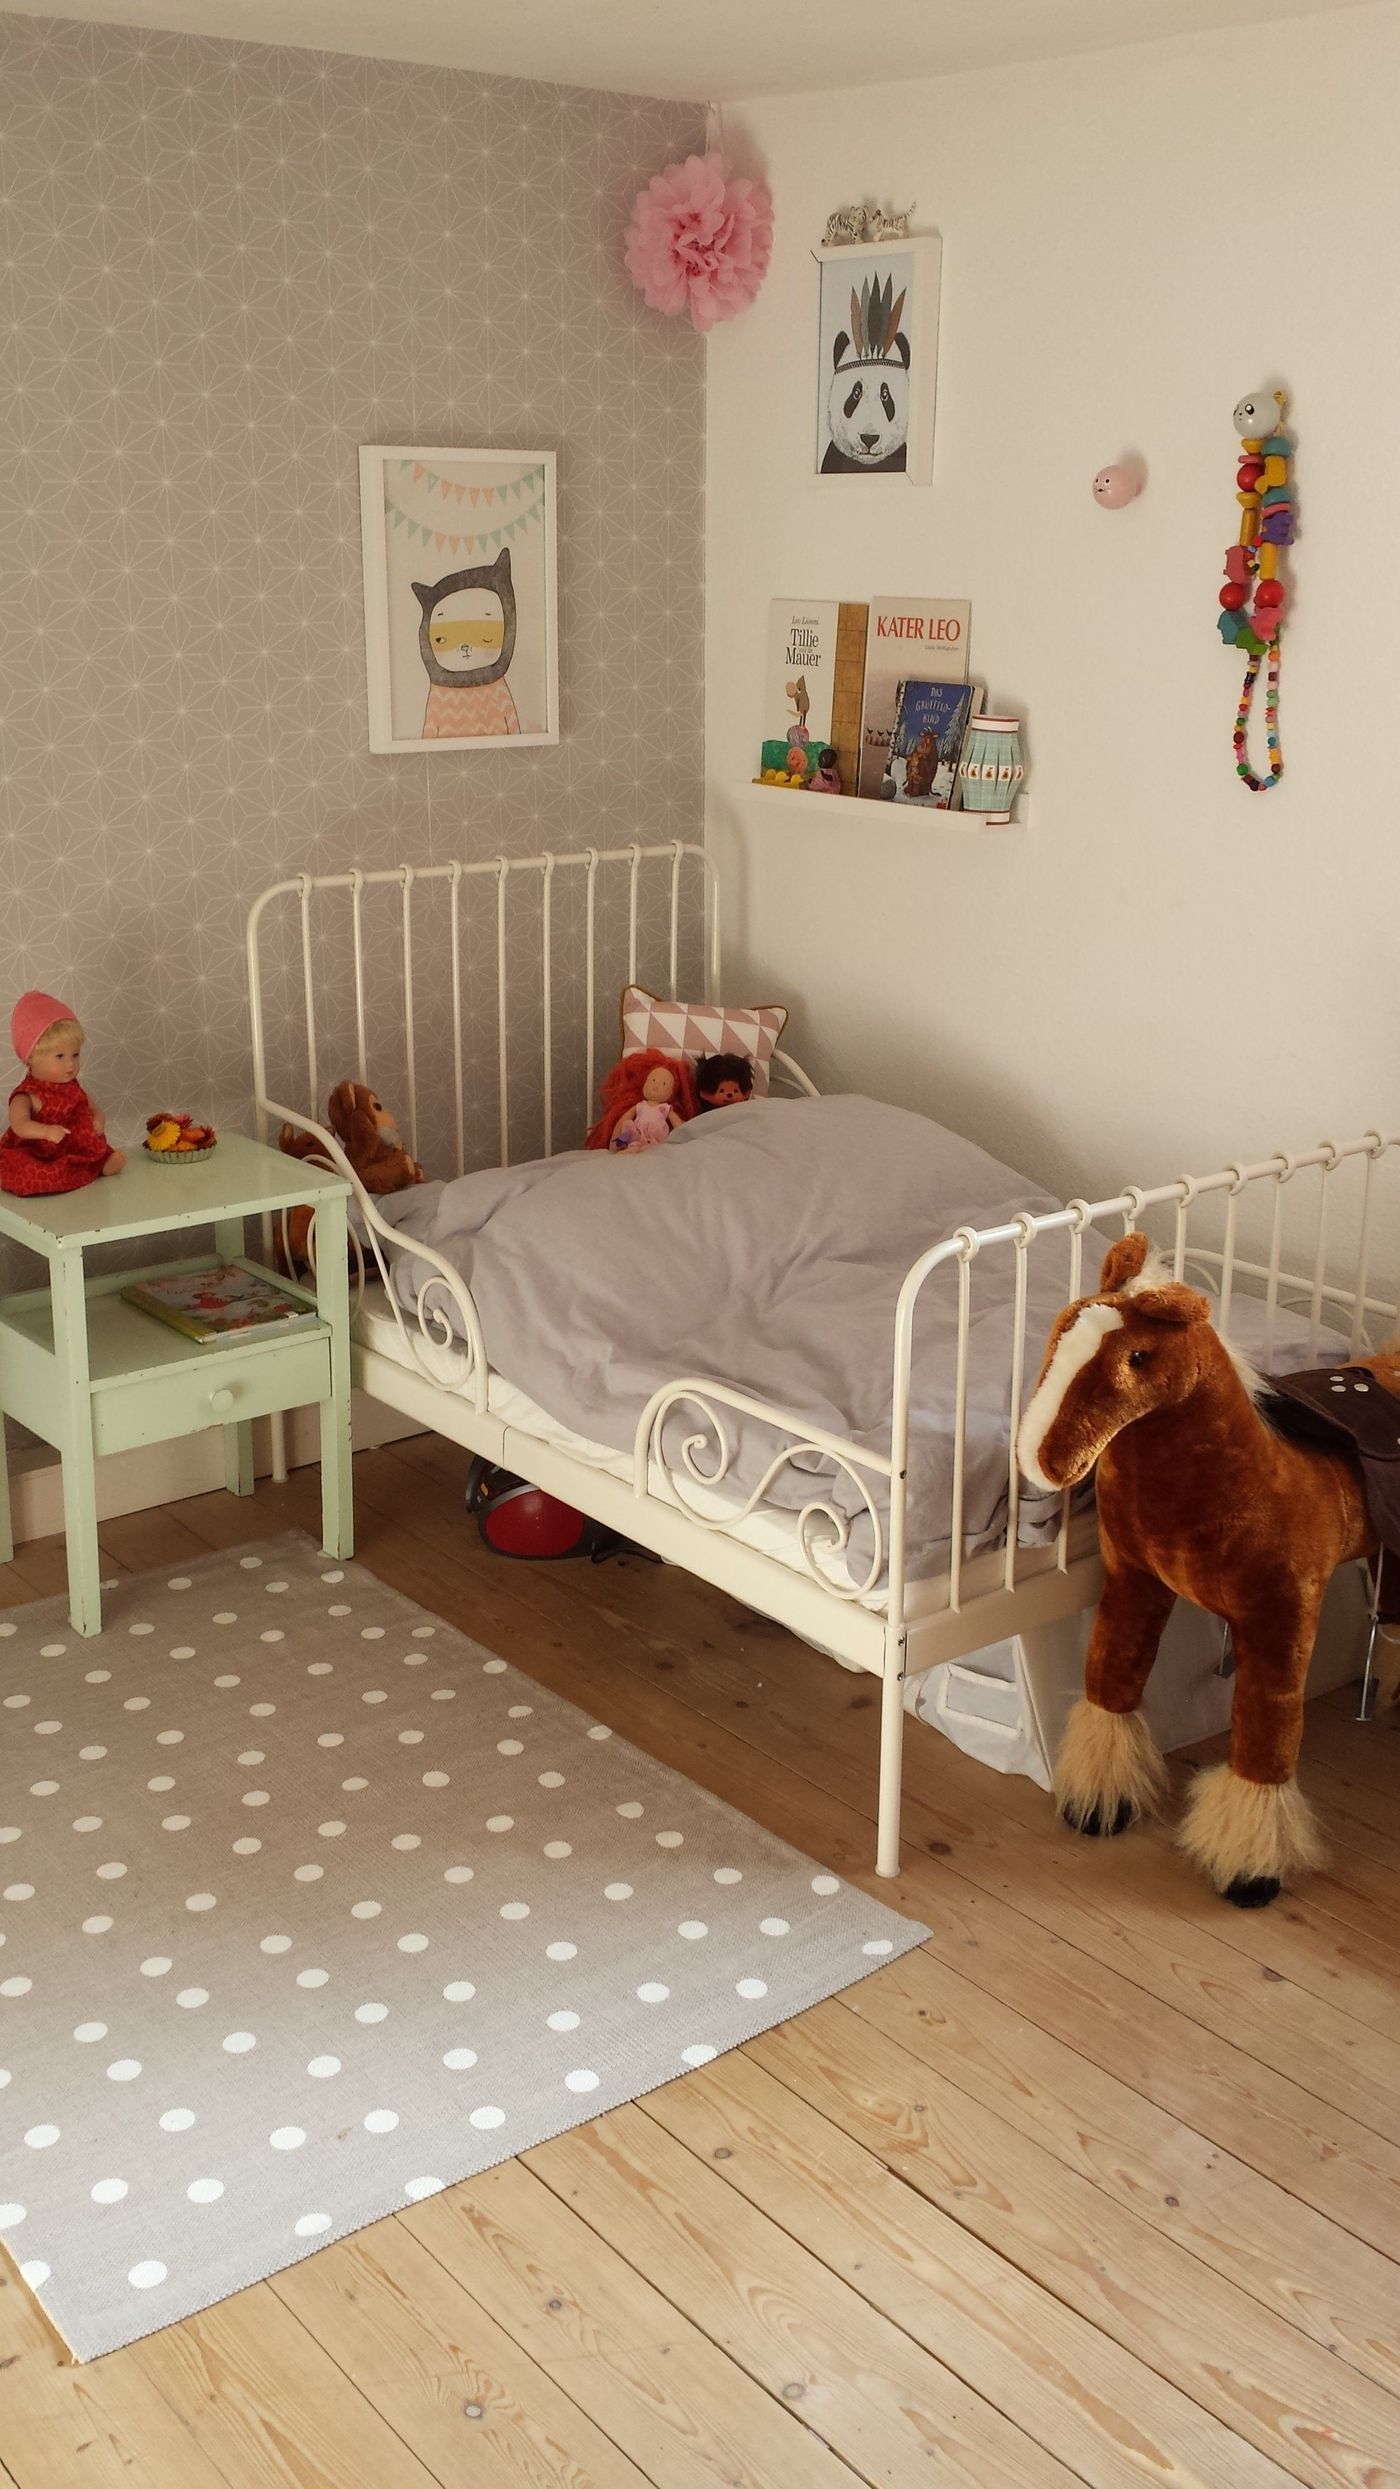 die sch nsten ideen f r kindertapeten im kinderzimmer. Black Bedroom Furniture Sets. Home Design Ideas